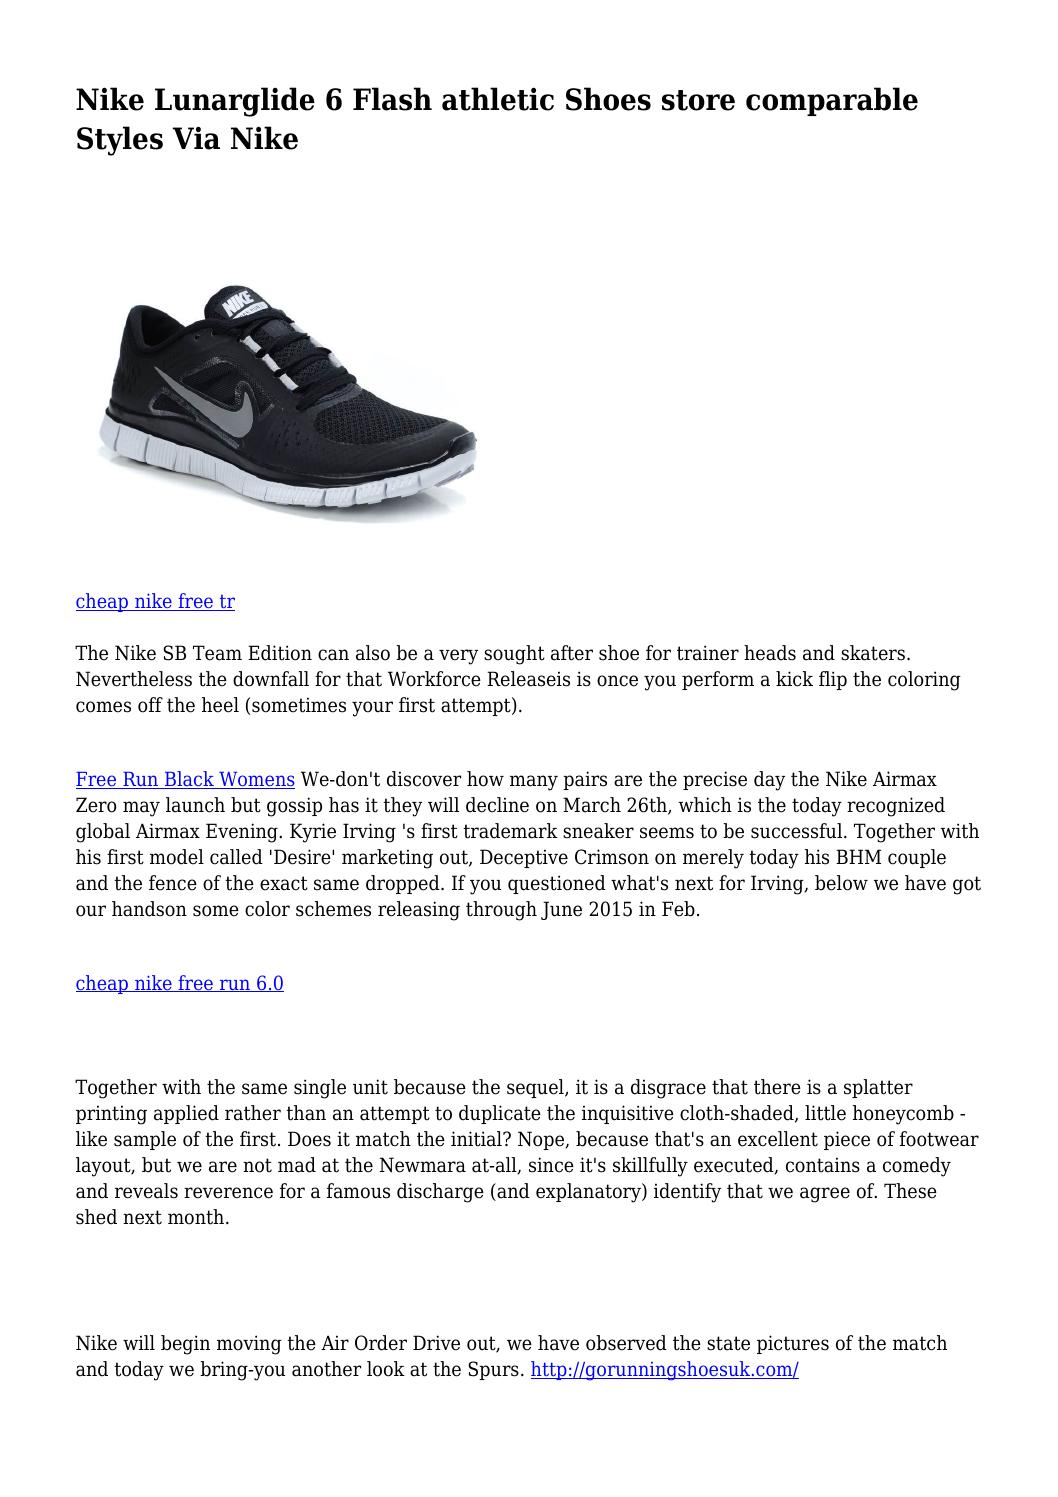 llegar error Eclipse solar  Nike Lunarglide 6 Flash athletic Shoes store comparable Styles Via Nike by  victoriousshame44 - issuu